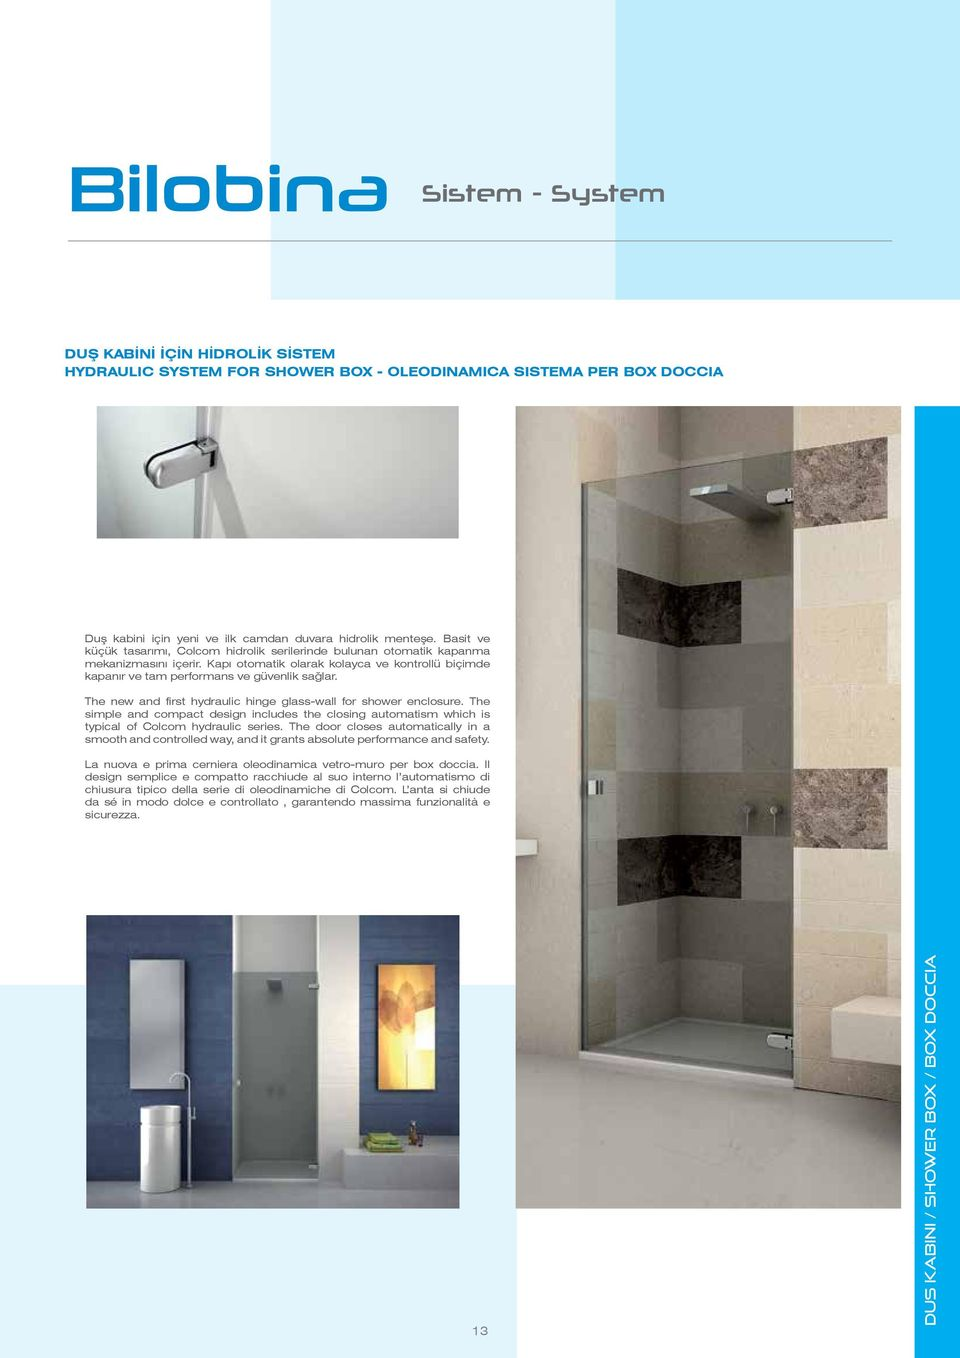 The new and first hydraulic hinge glass-wall for shower enclosure. The simple and compact design includes the closing automatism which is typical of Colcom hydraulic series.